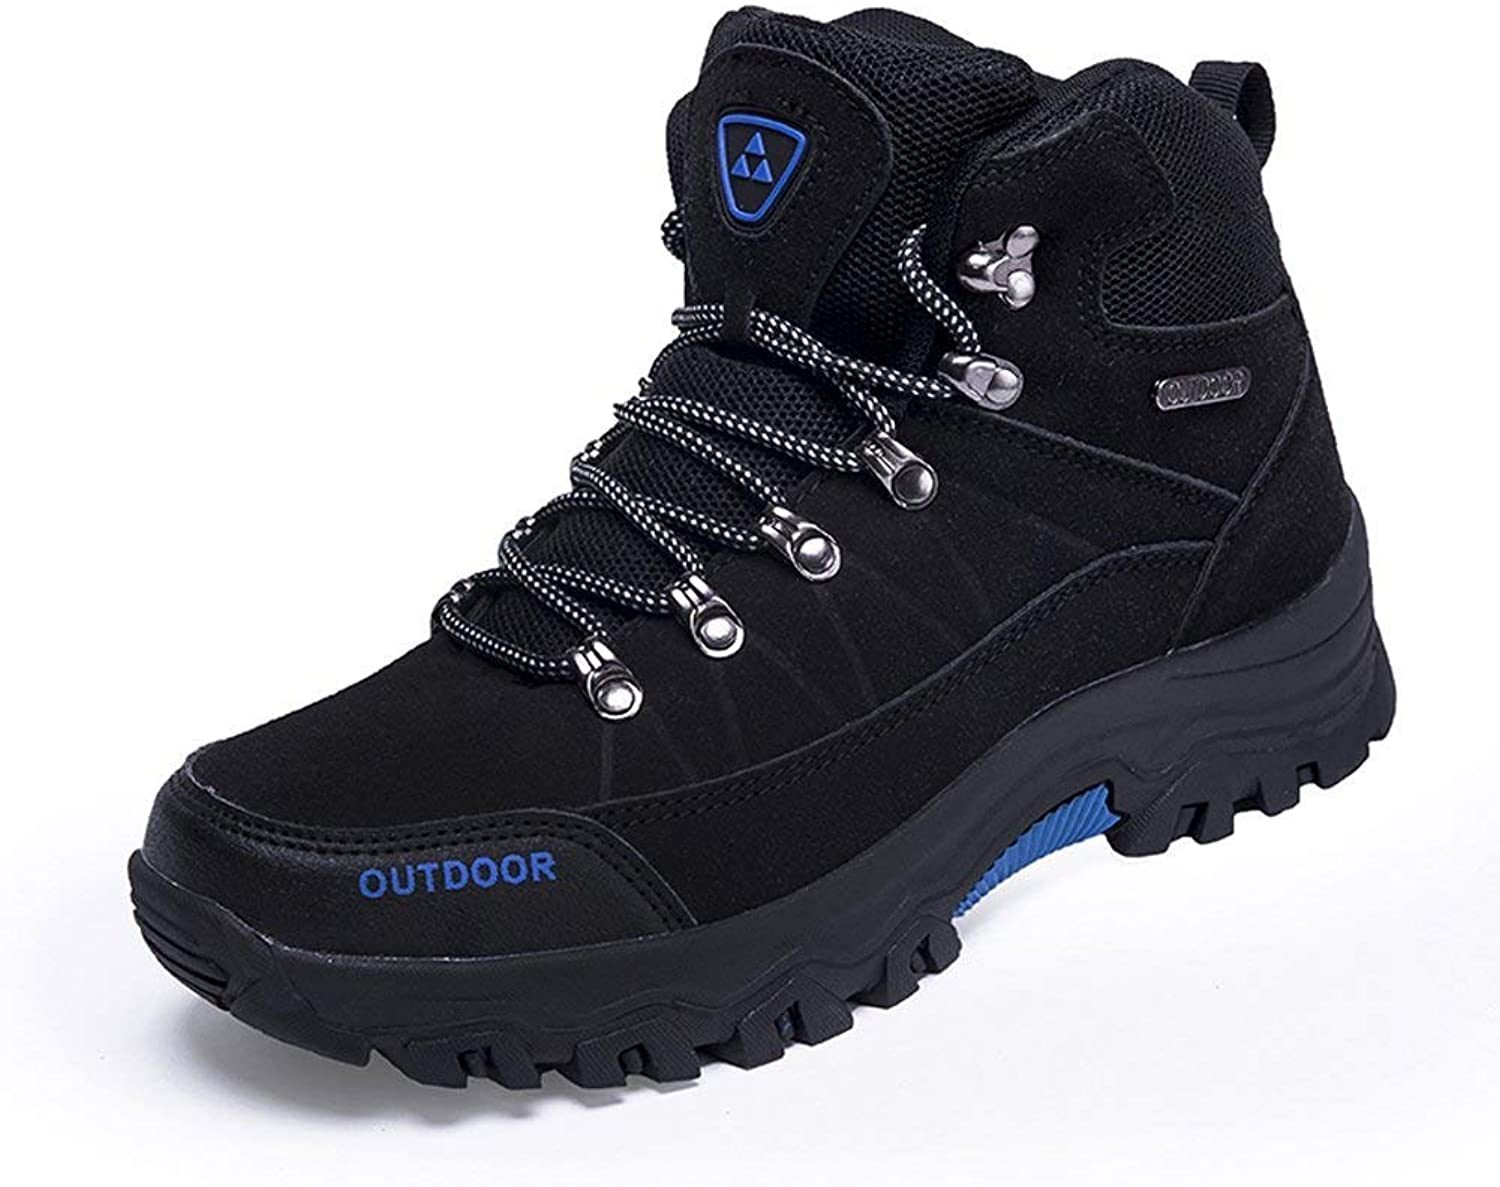 Cici shoes Women's Hiker Leather Waterproof Hiking Boot Outdoor Backpacking shoes